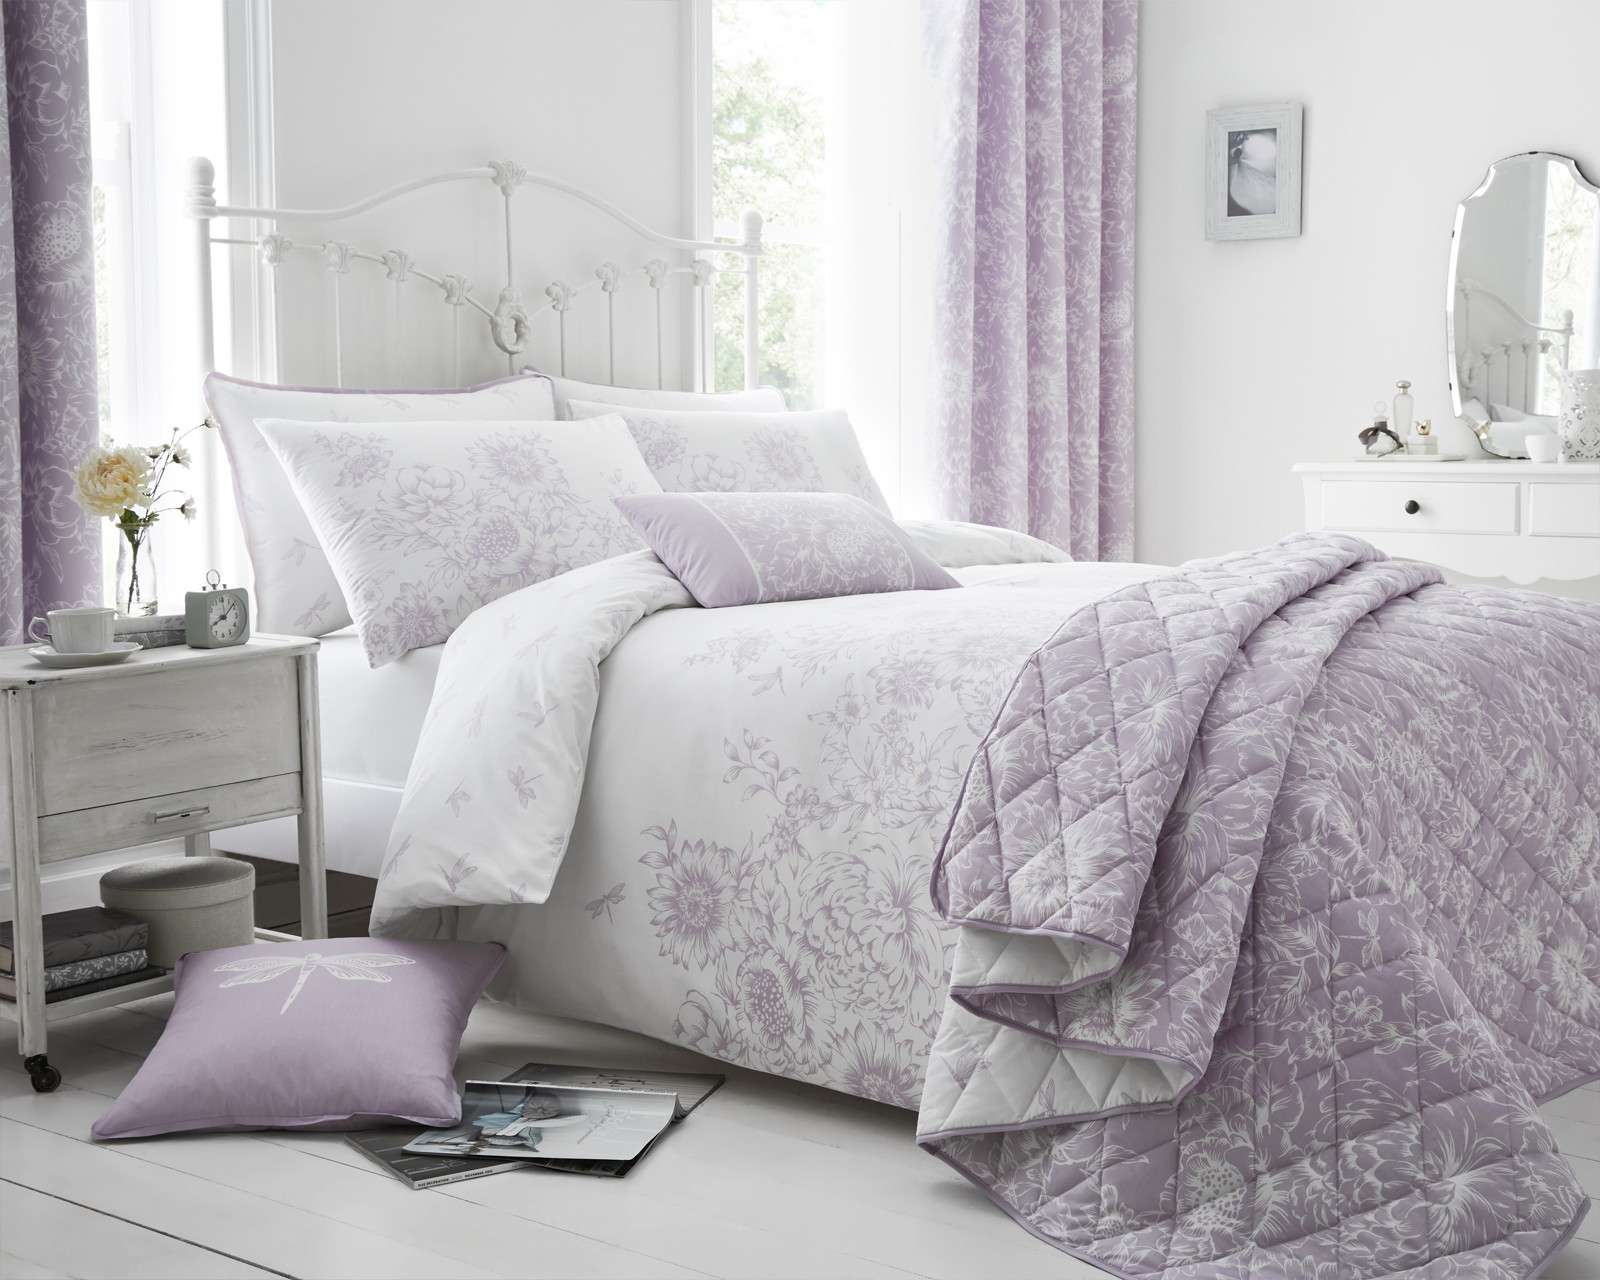 Floral Border Design Bedding Set in Lilac